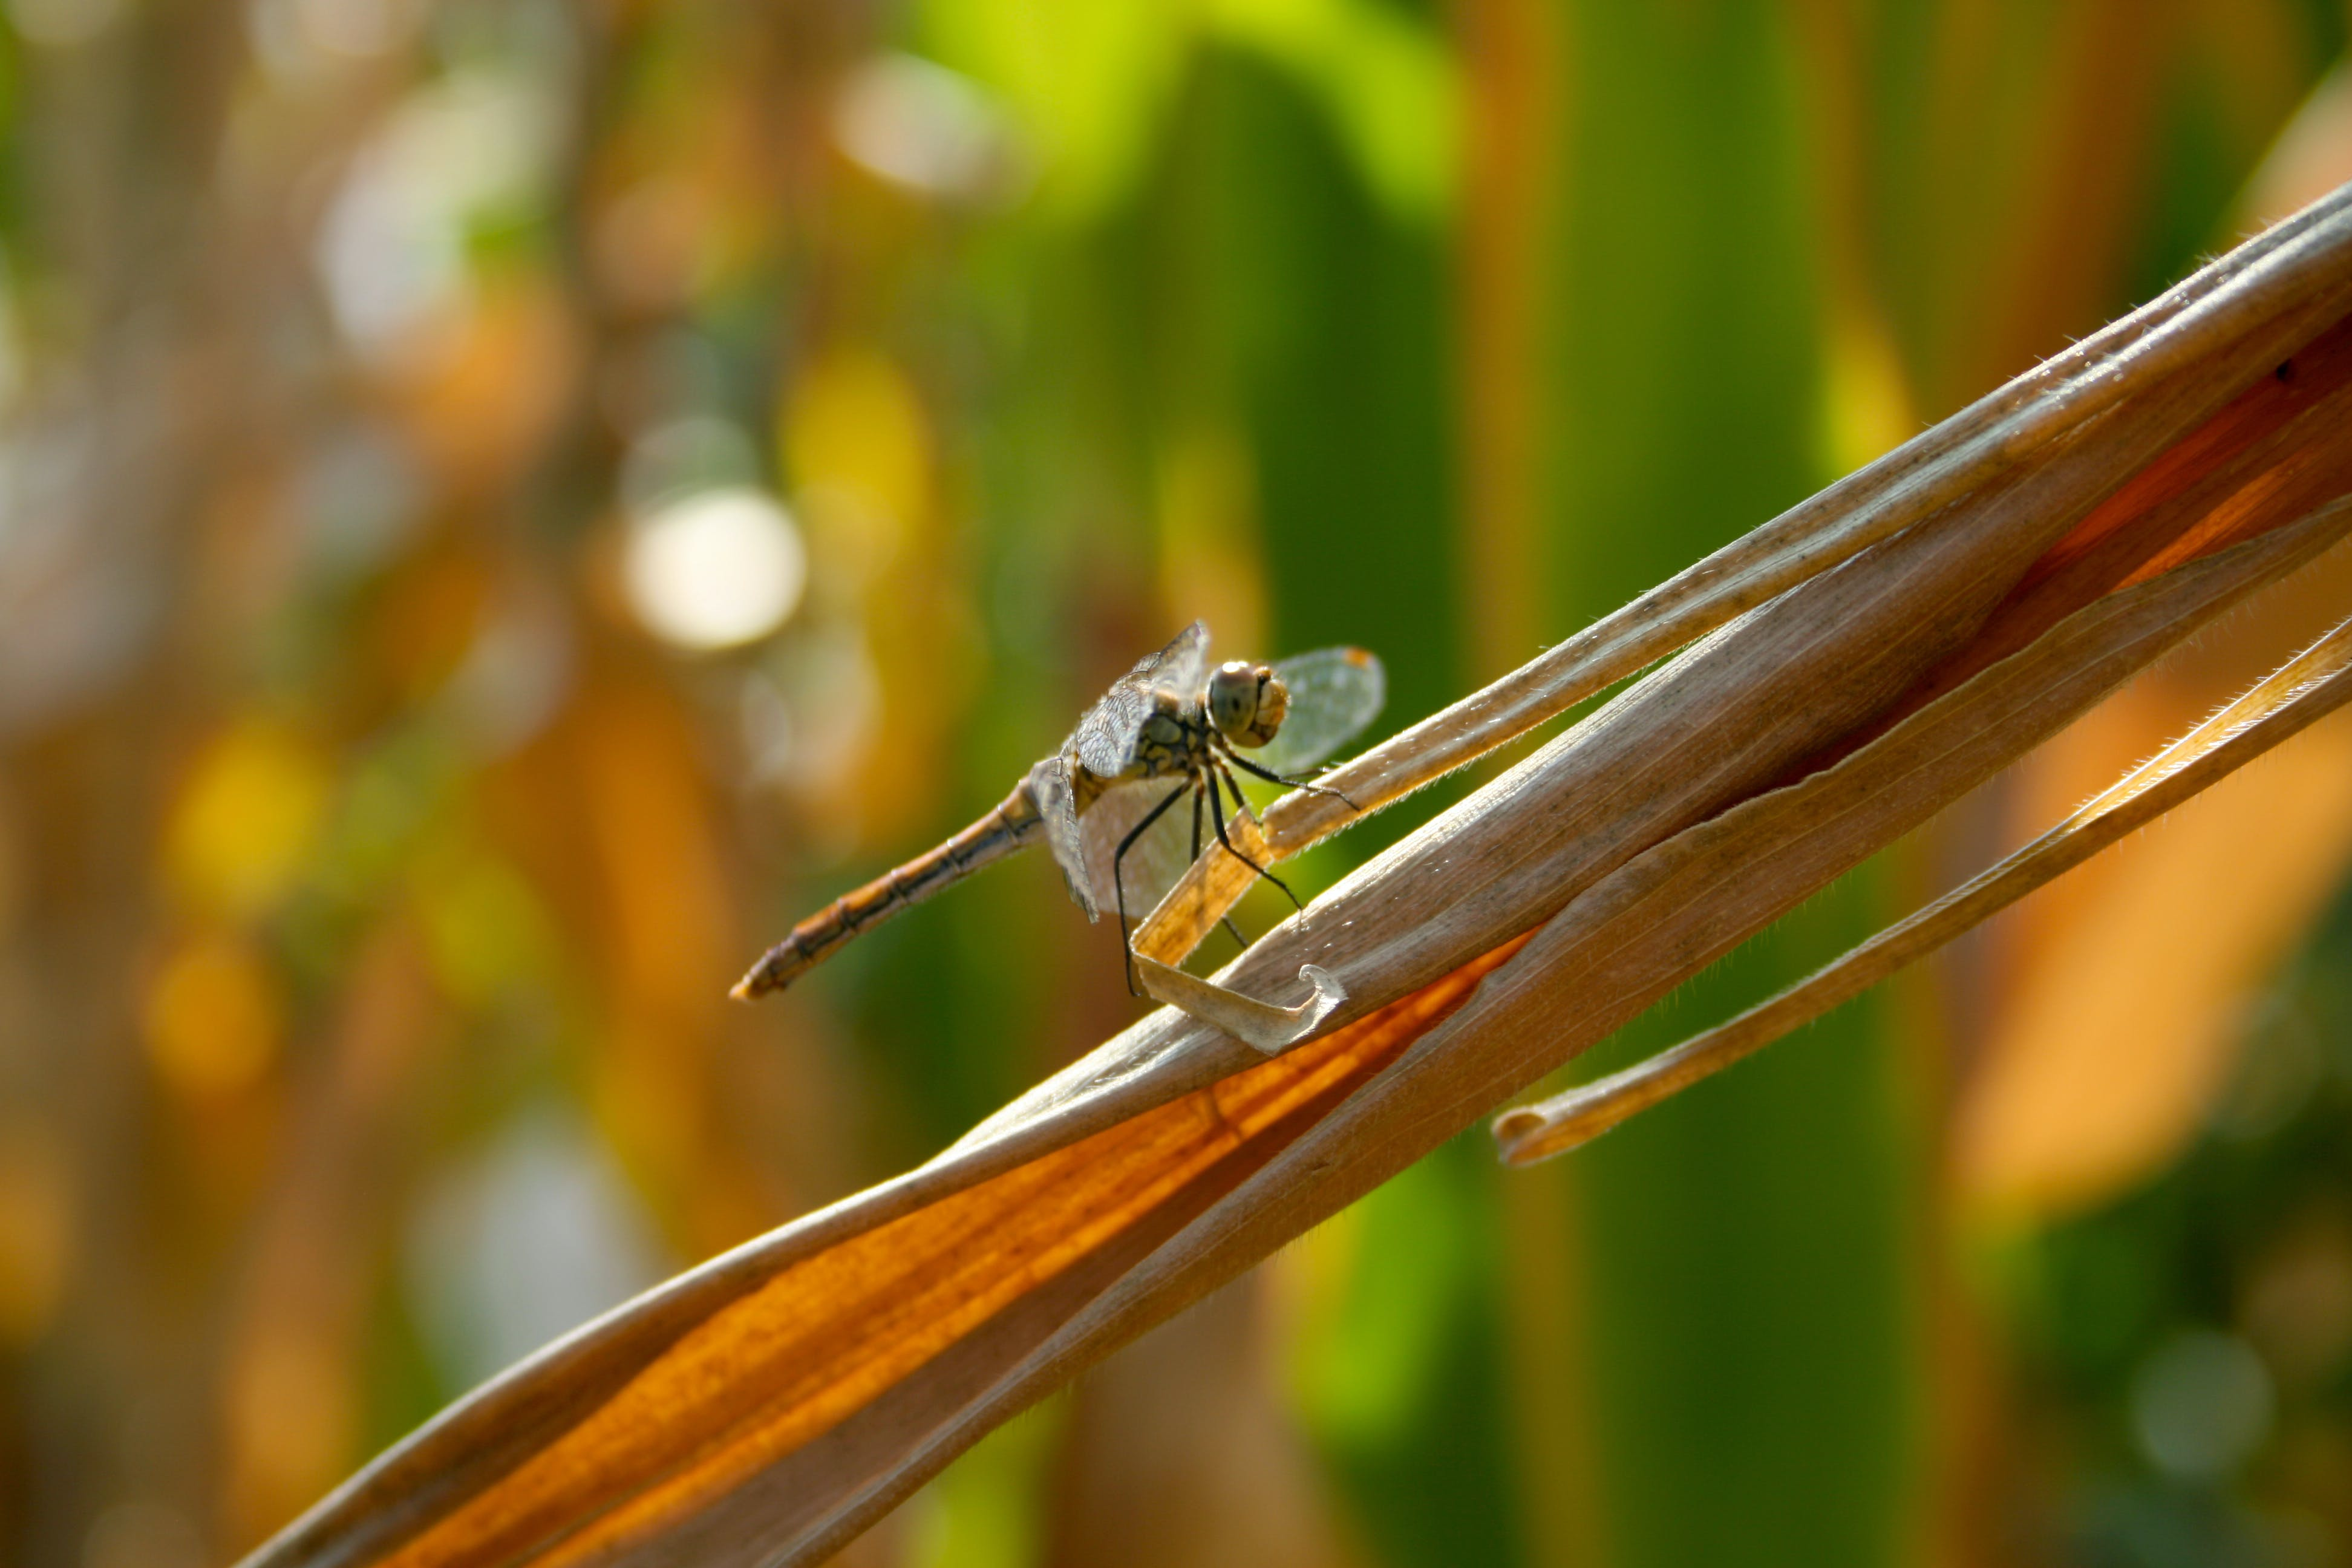 Free stock photo of closeup, cornfield, dragonfly, insect